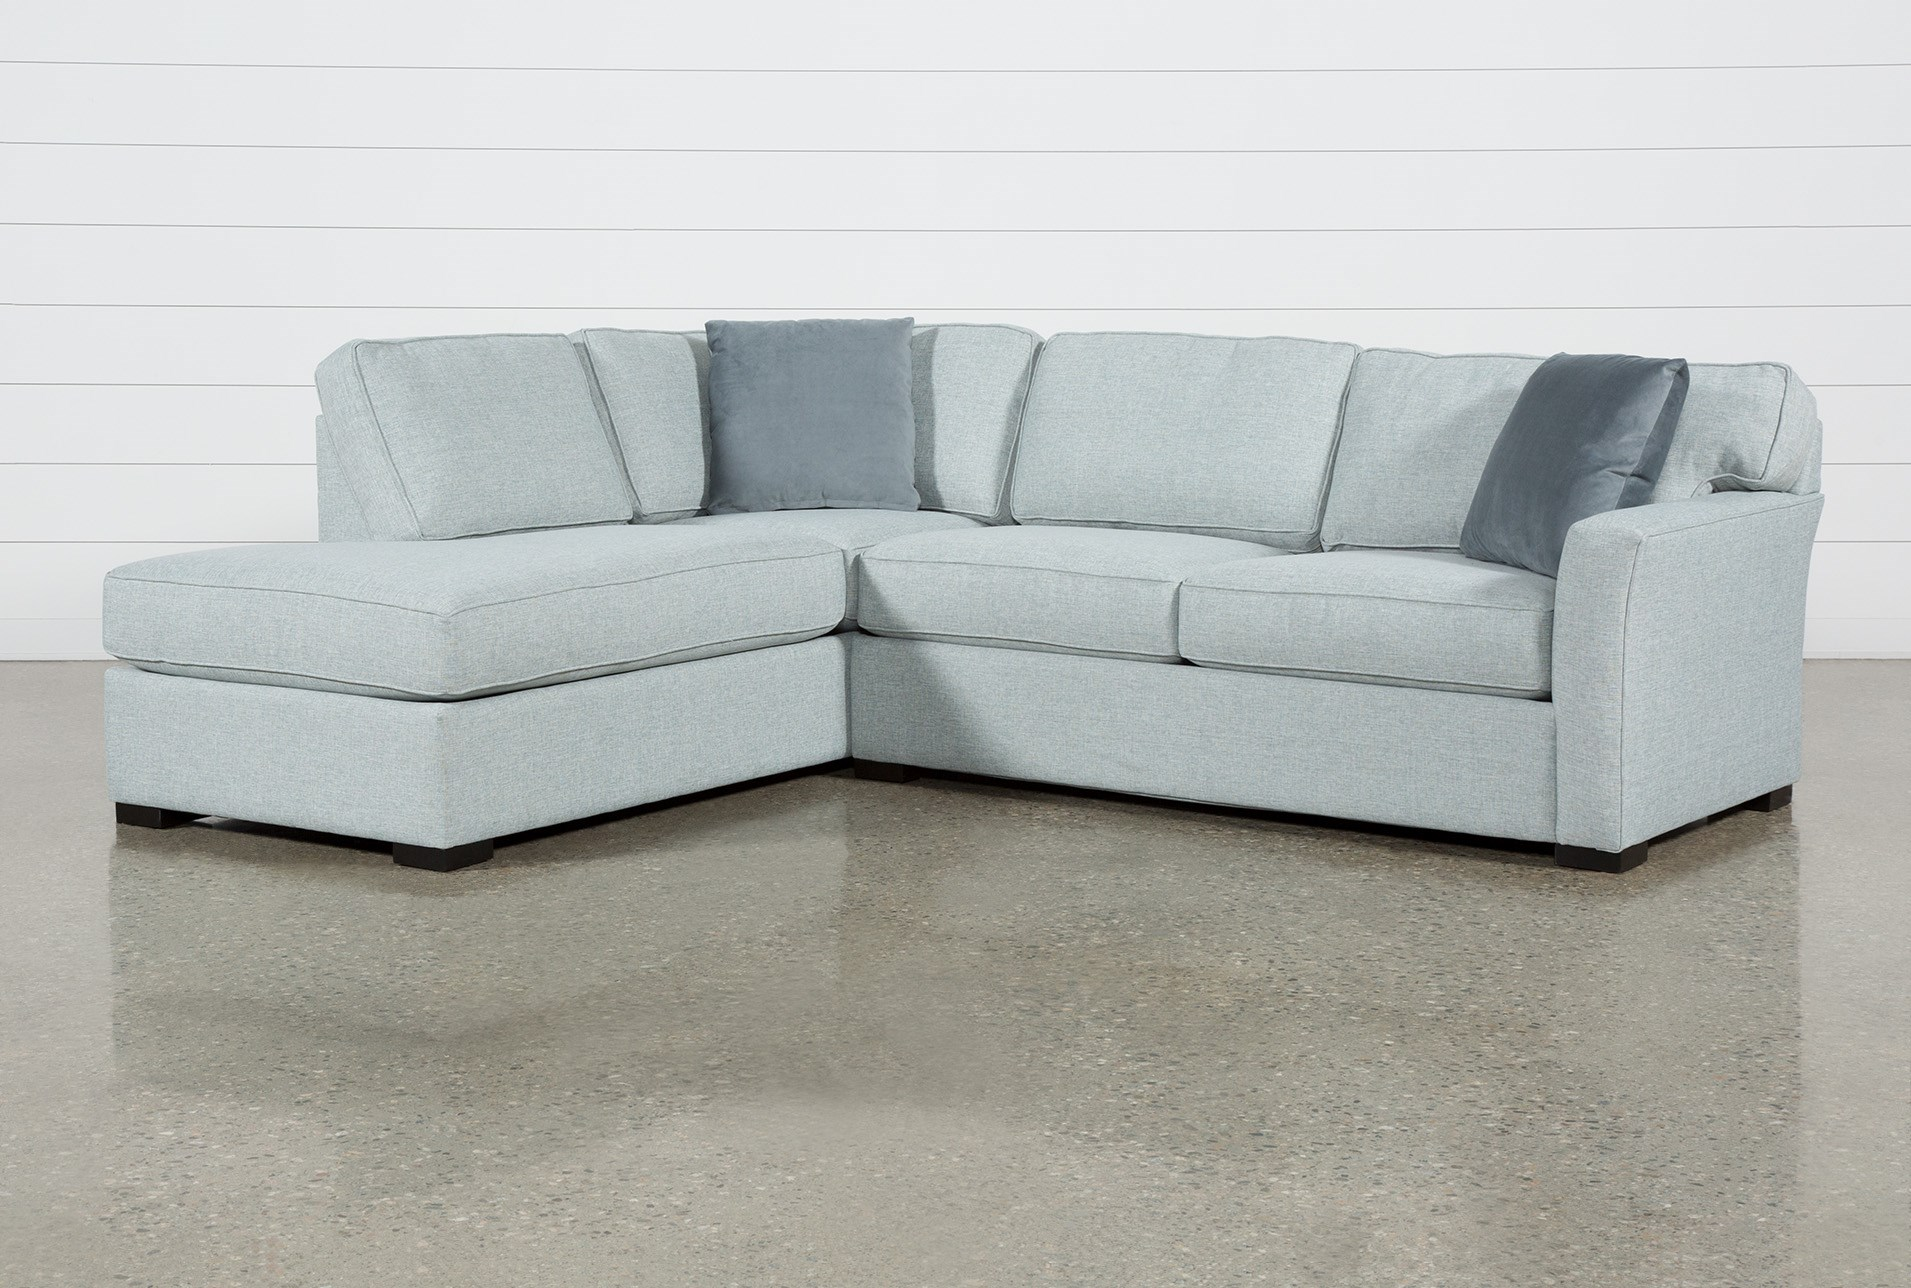 Aspen Tranquil Foam 2 Piece Sleeper Sectional With Left